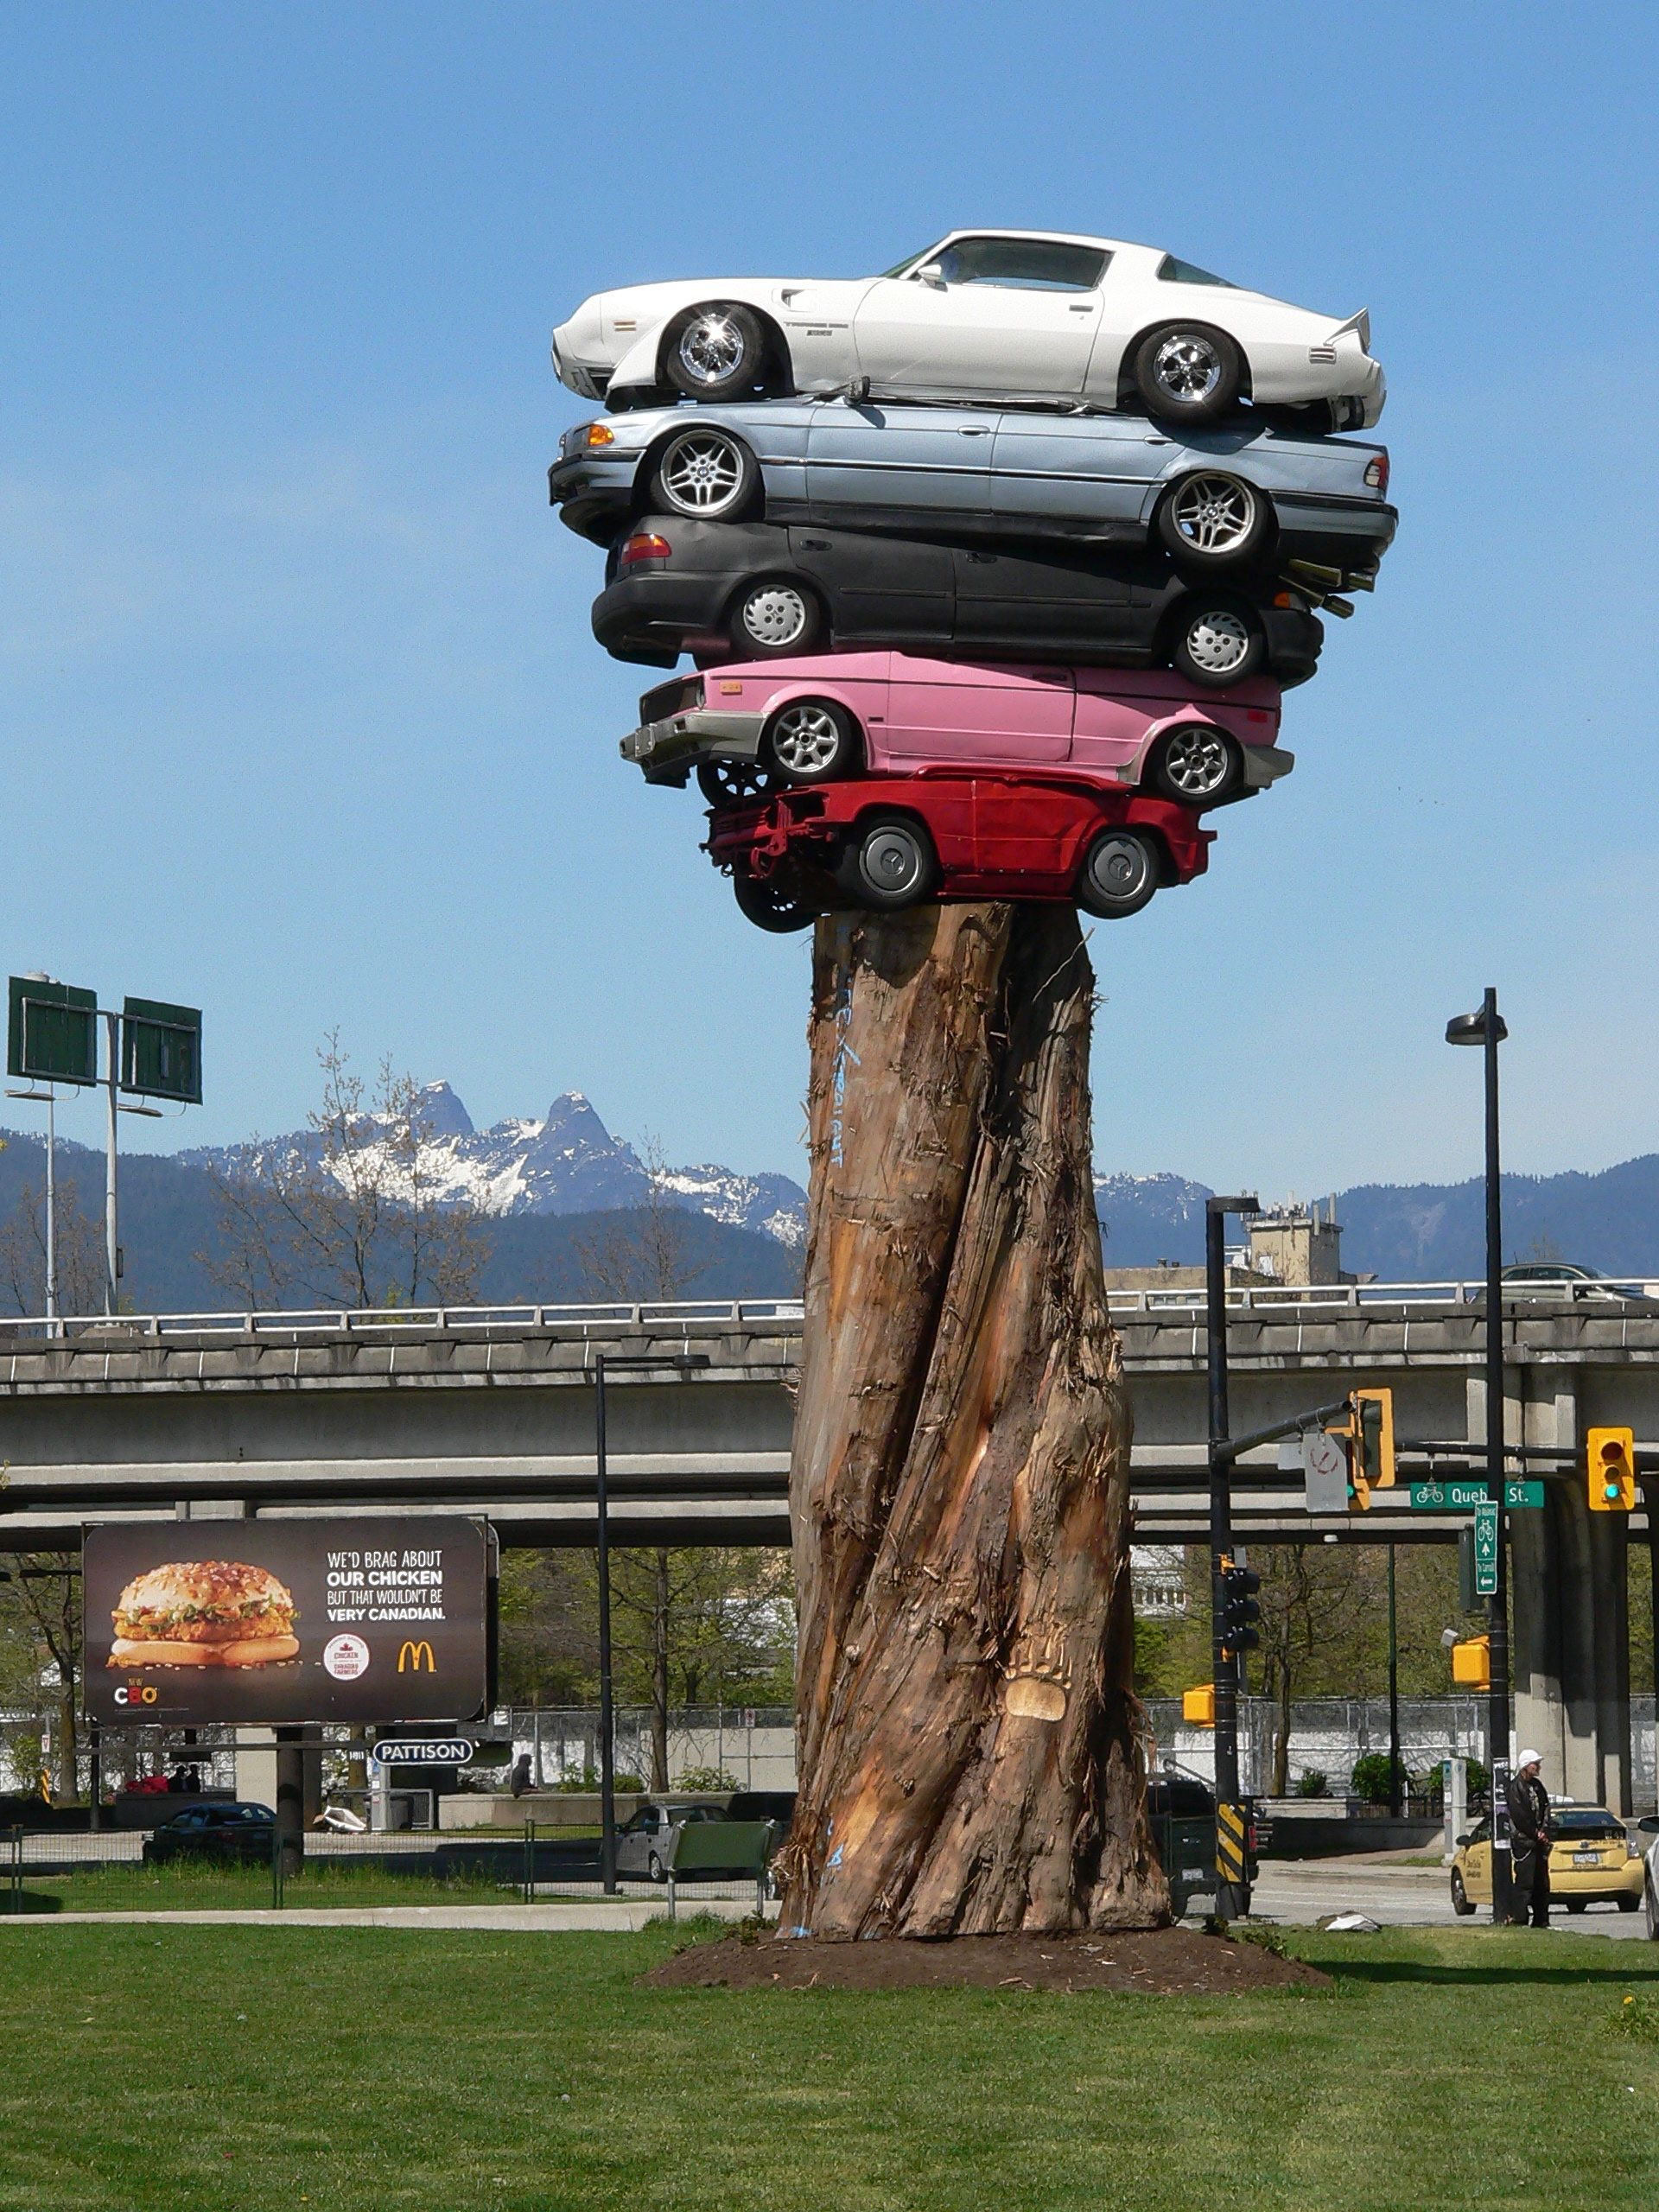 Trans Am Totem (2014), by Marcus Bowcott and Helene Aspinall